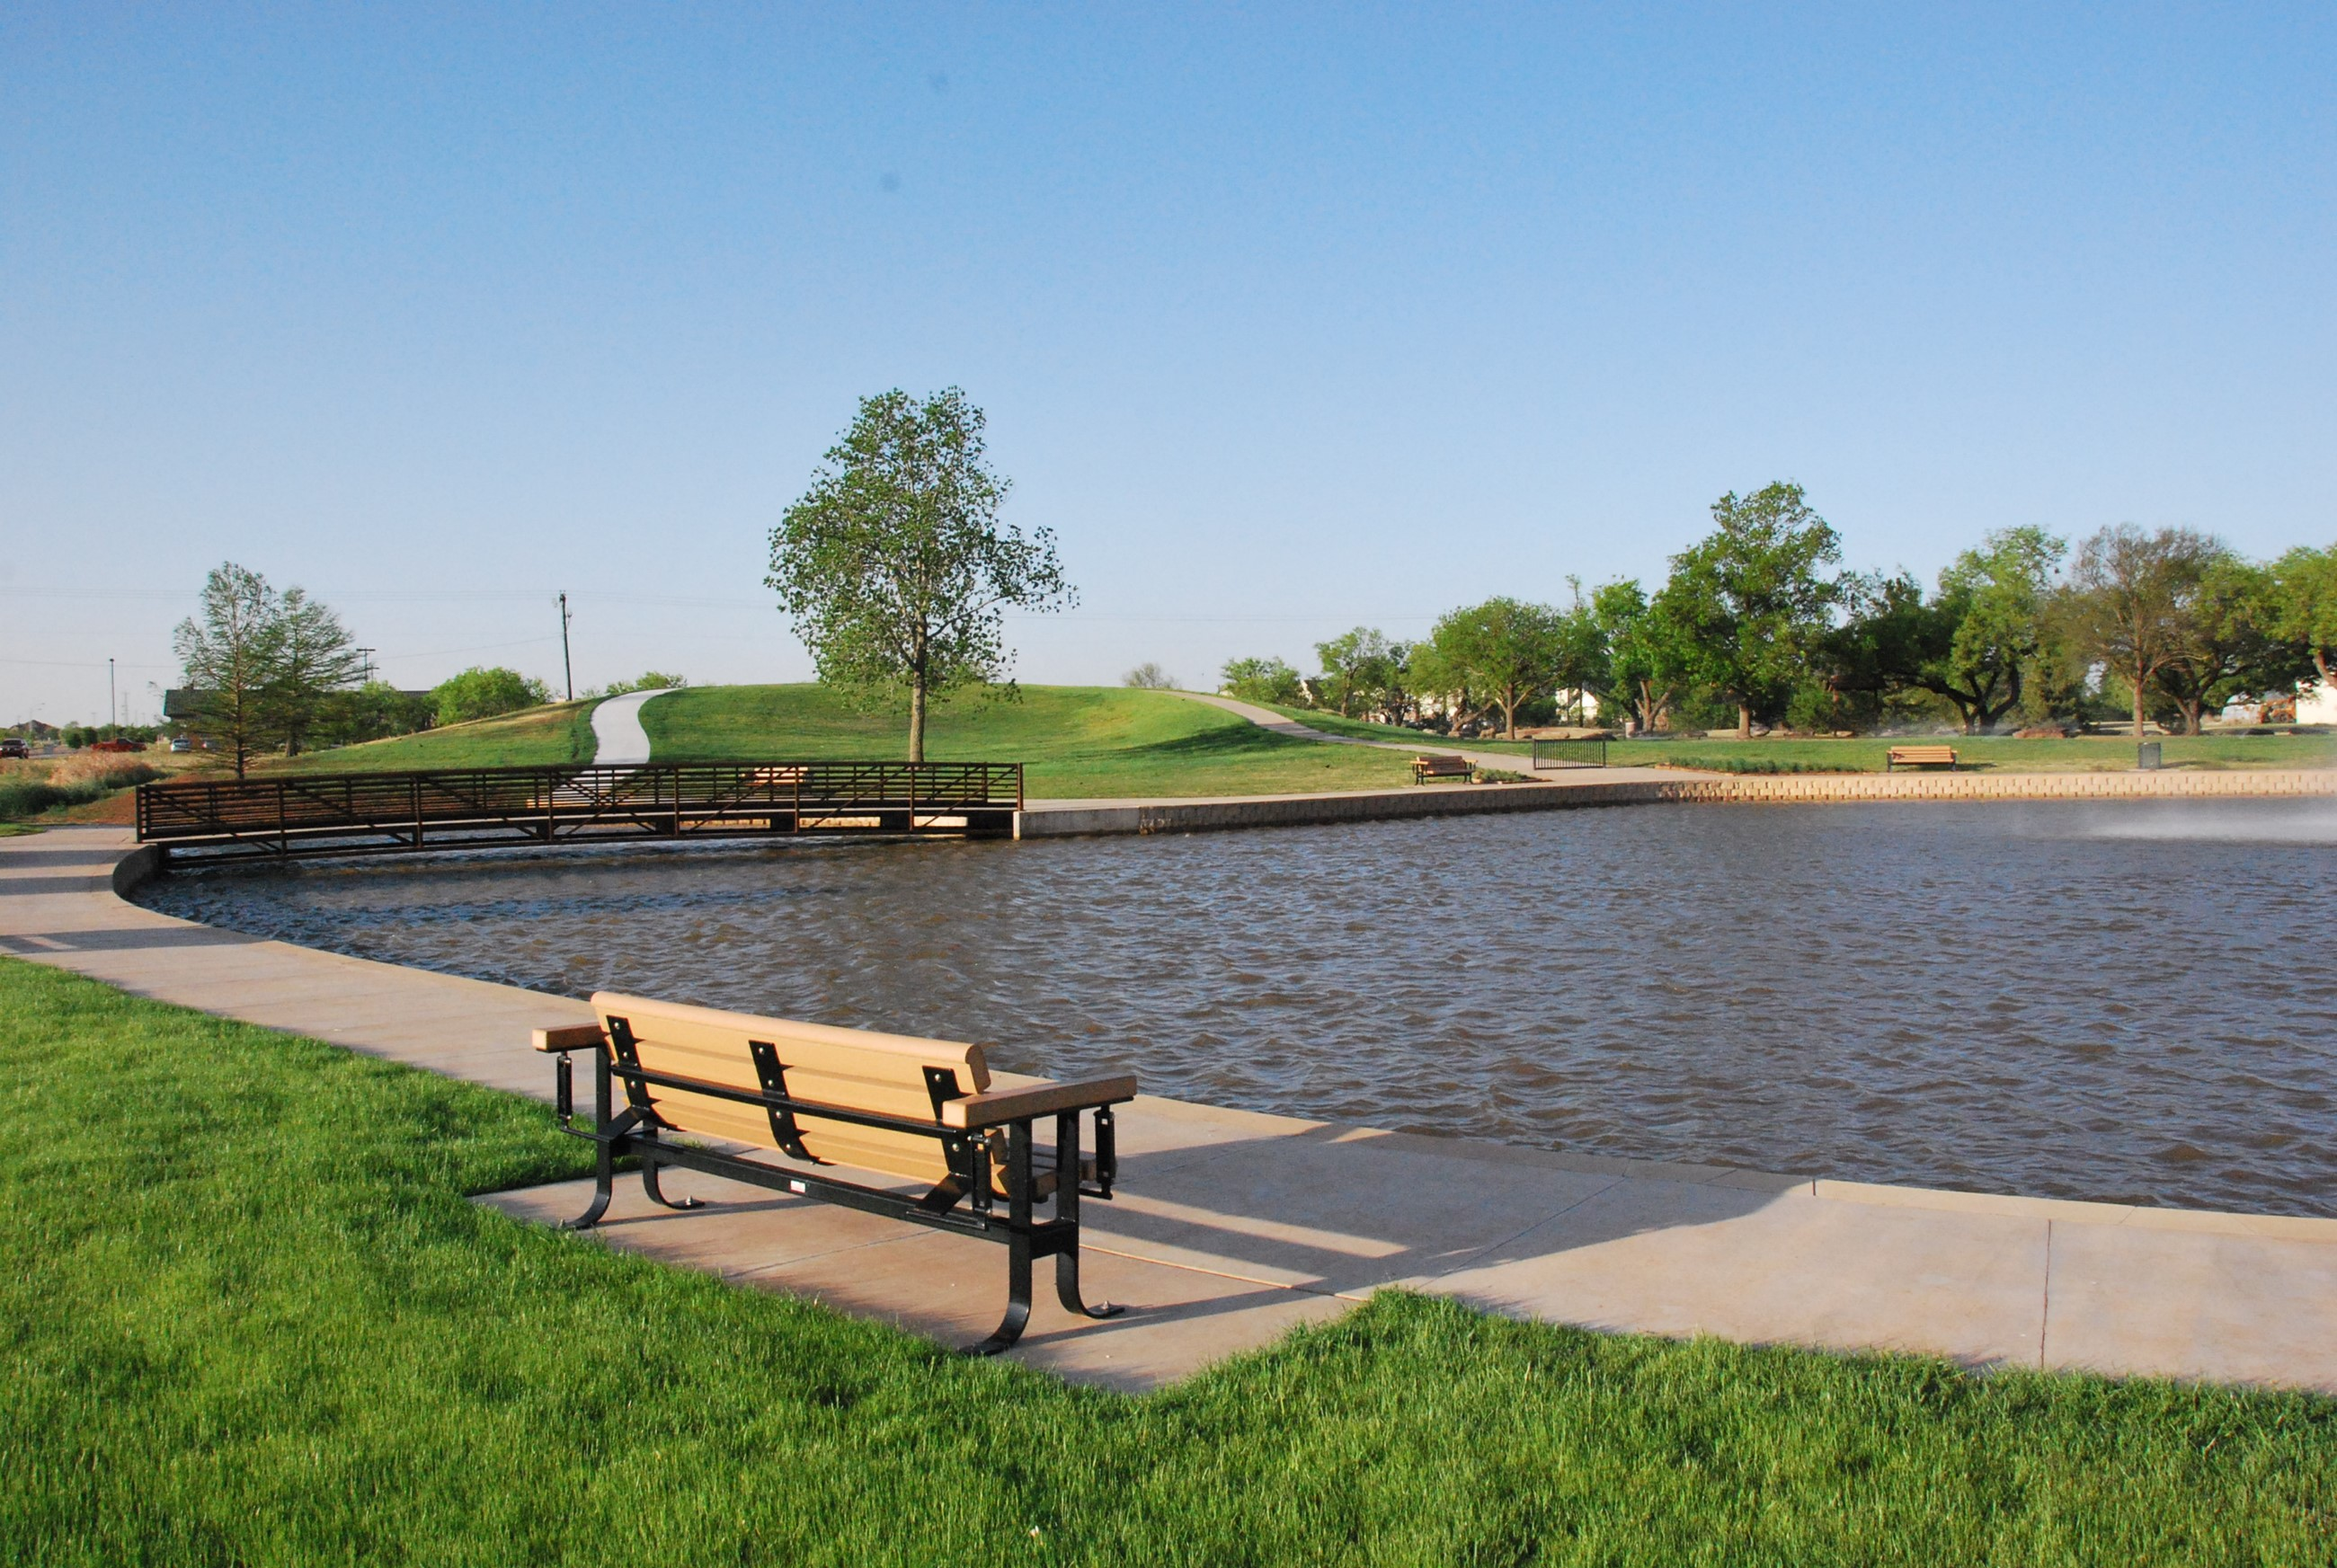 South Weeks Park 4-15-2011 014.jpg